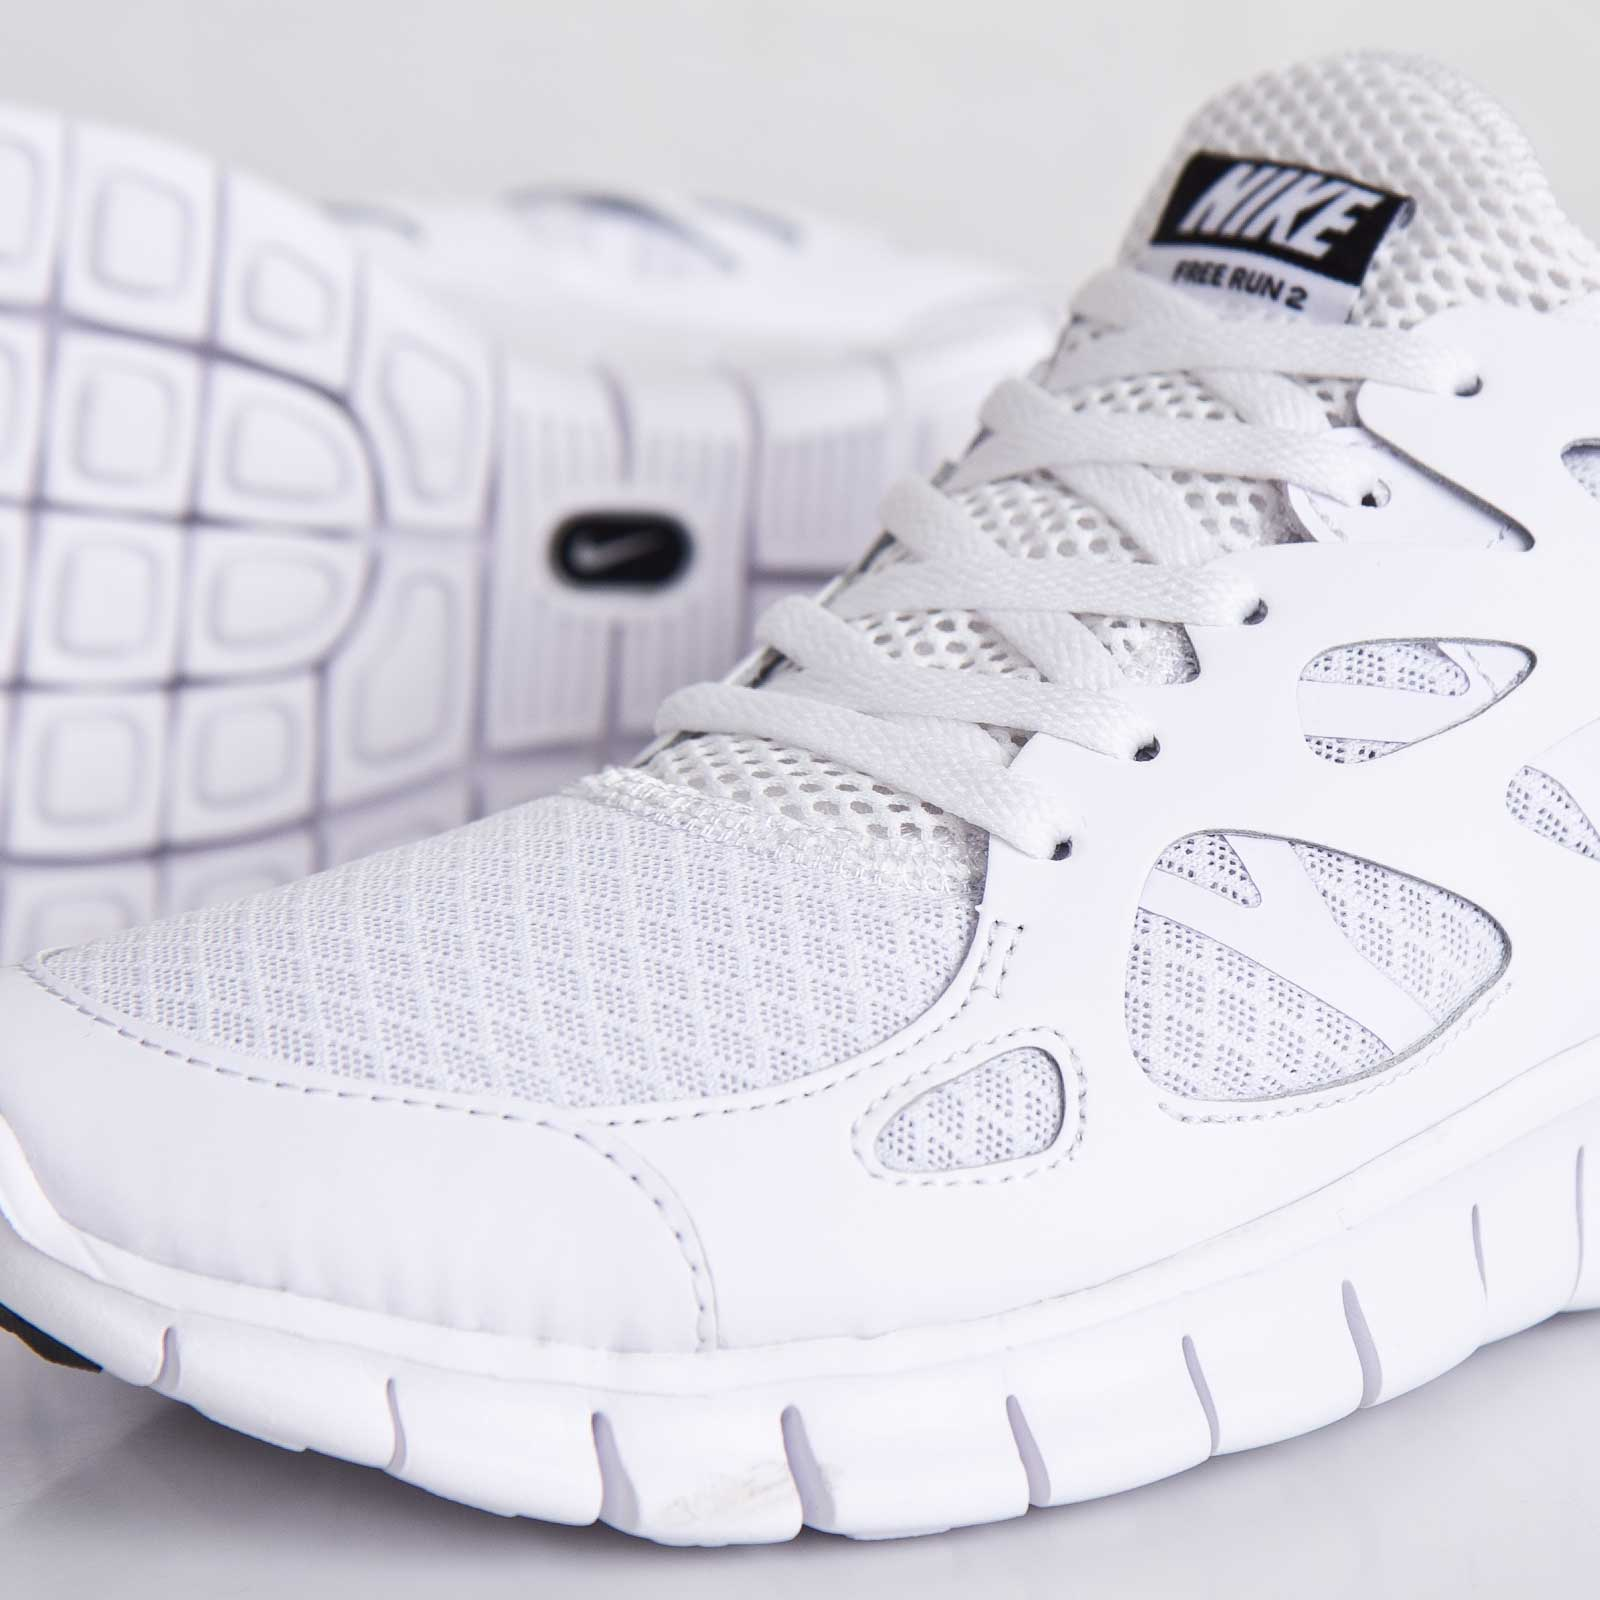 Nike Free Run 2 shoes white